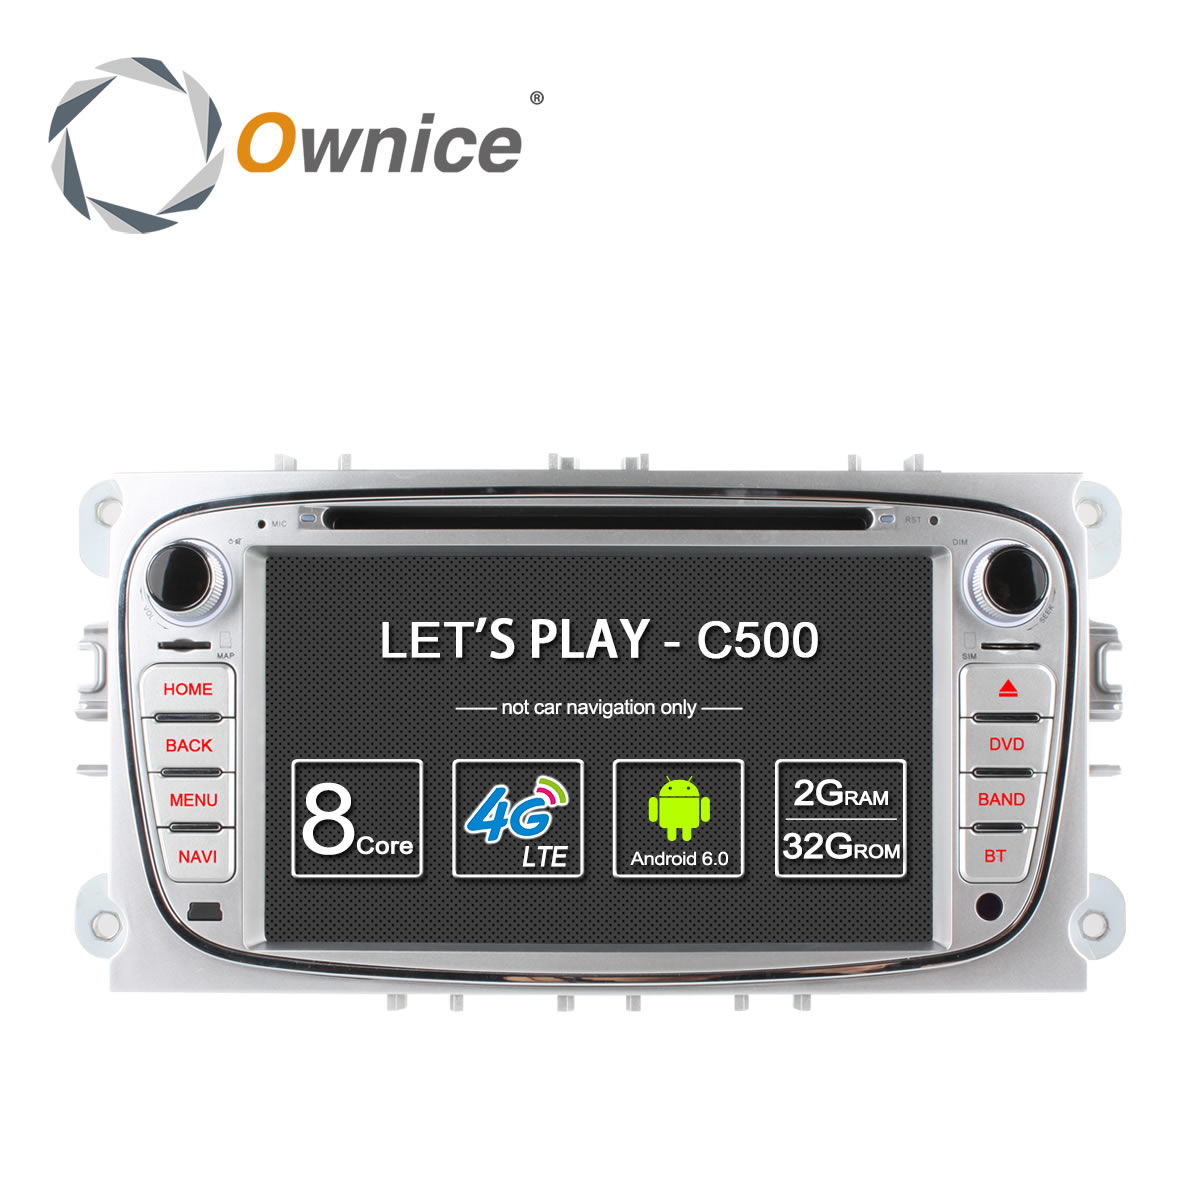 Ownice C500 4G LTE Android 6.0 Octa 8 Core Car DVD Player GPS For FORD Mondeo S-MAX Connect FOCUS 2 2008 2009 2010 2011 32G ROM ownice c500 octa core android 6 0 car dvd gps for mazda 6 ruiyi ultra 2008 2009 2010 2011 2012 wifi 4g radio 2gb ram bt 32g rom